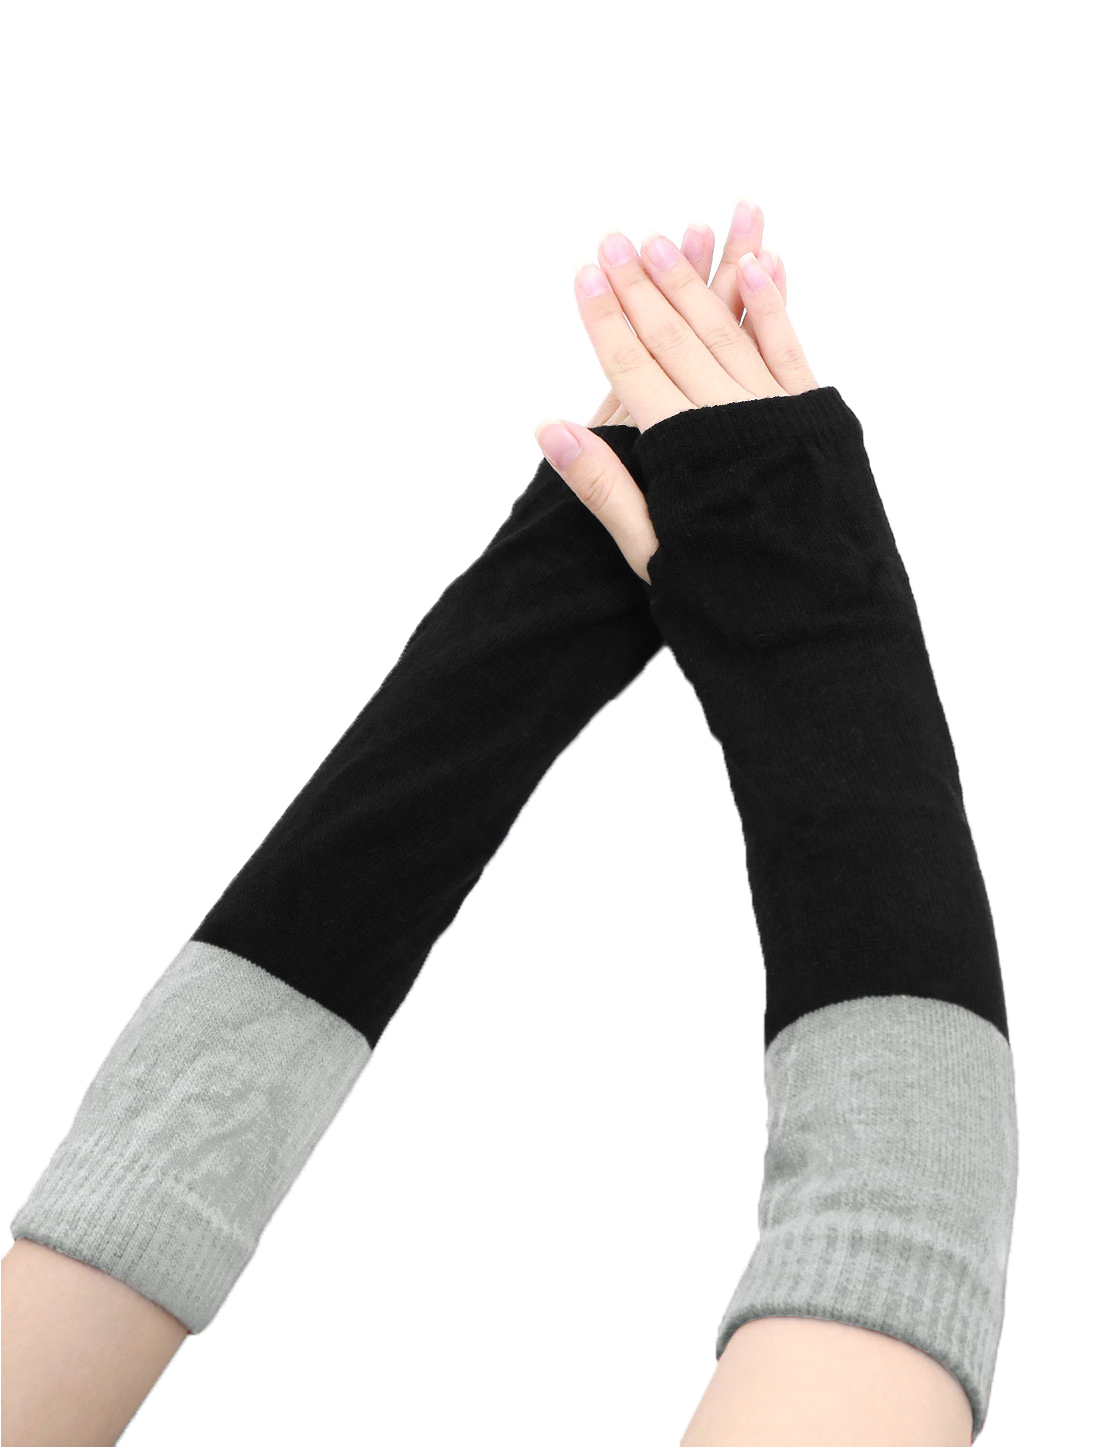 Lady Color Block Knit Fingerless Gloves Pair Gray Black